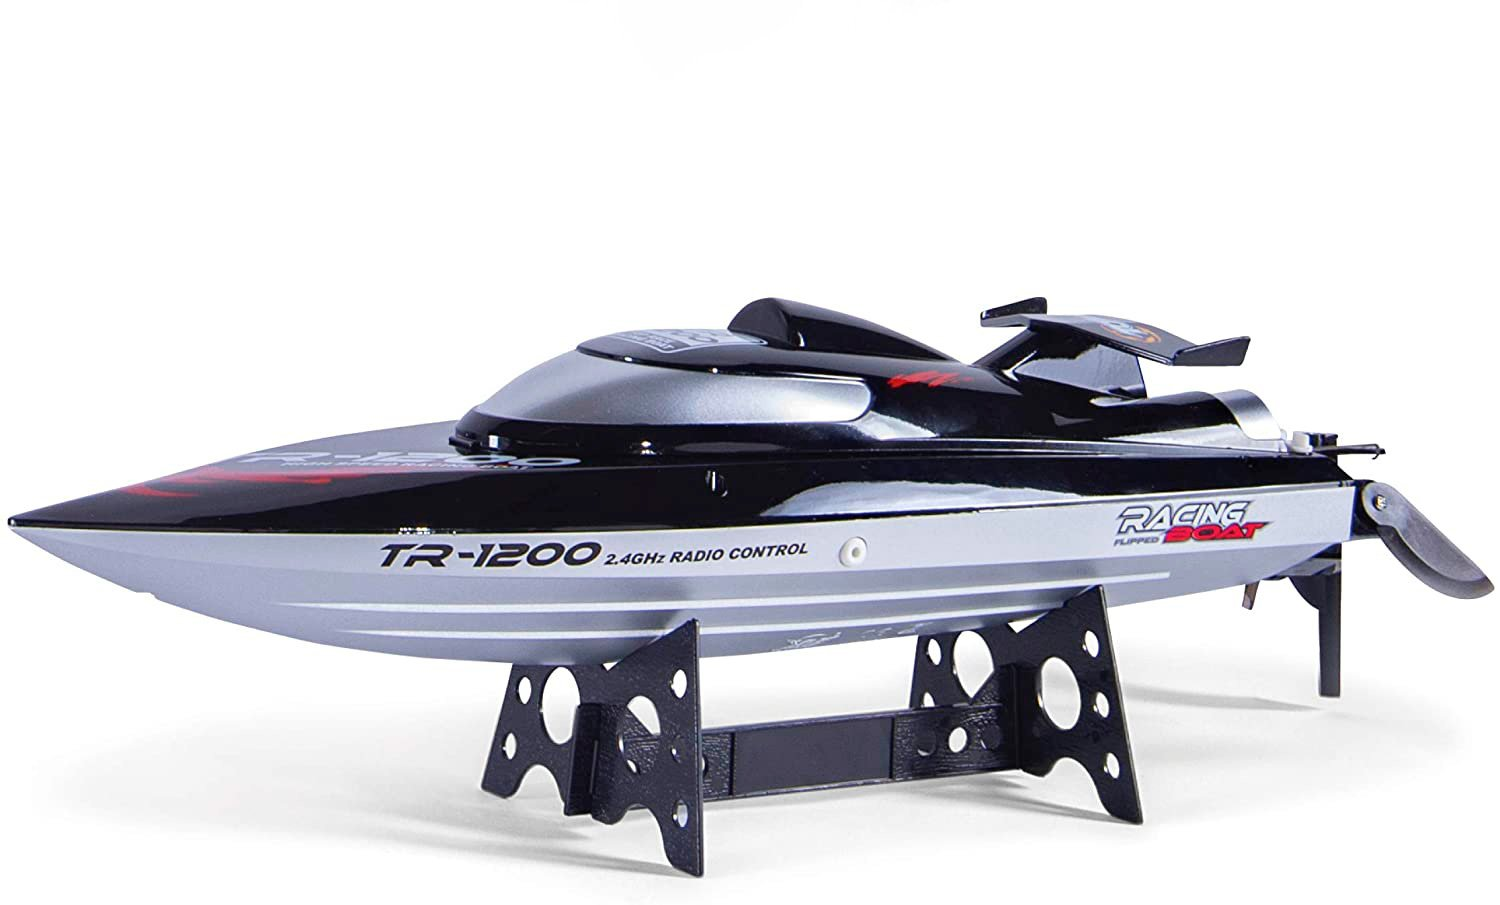 Top Race TR-1200 review